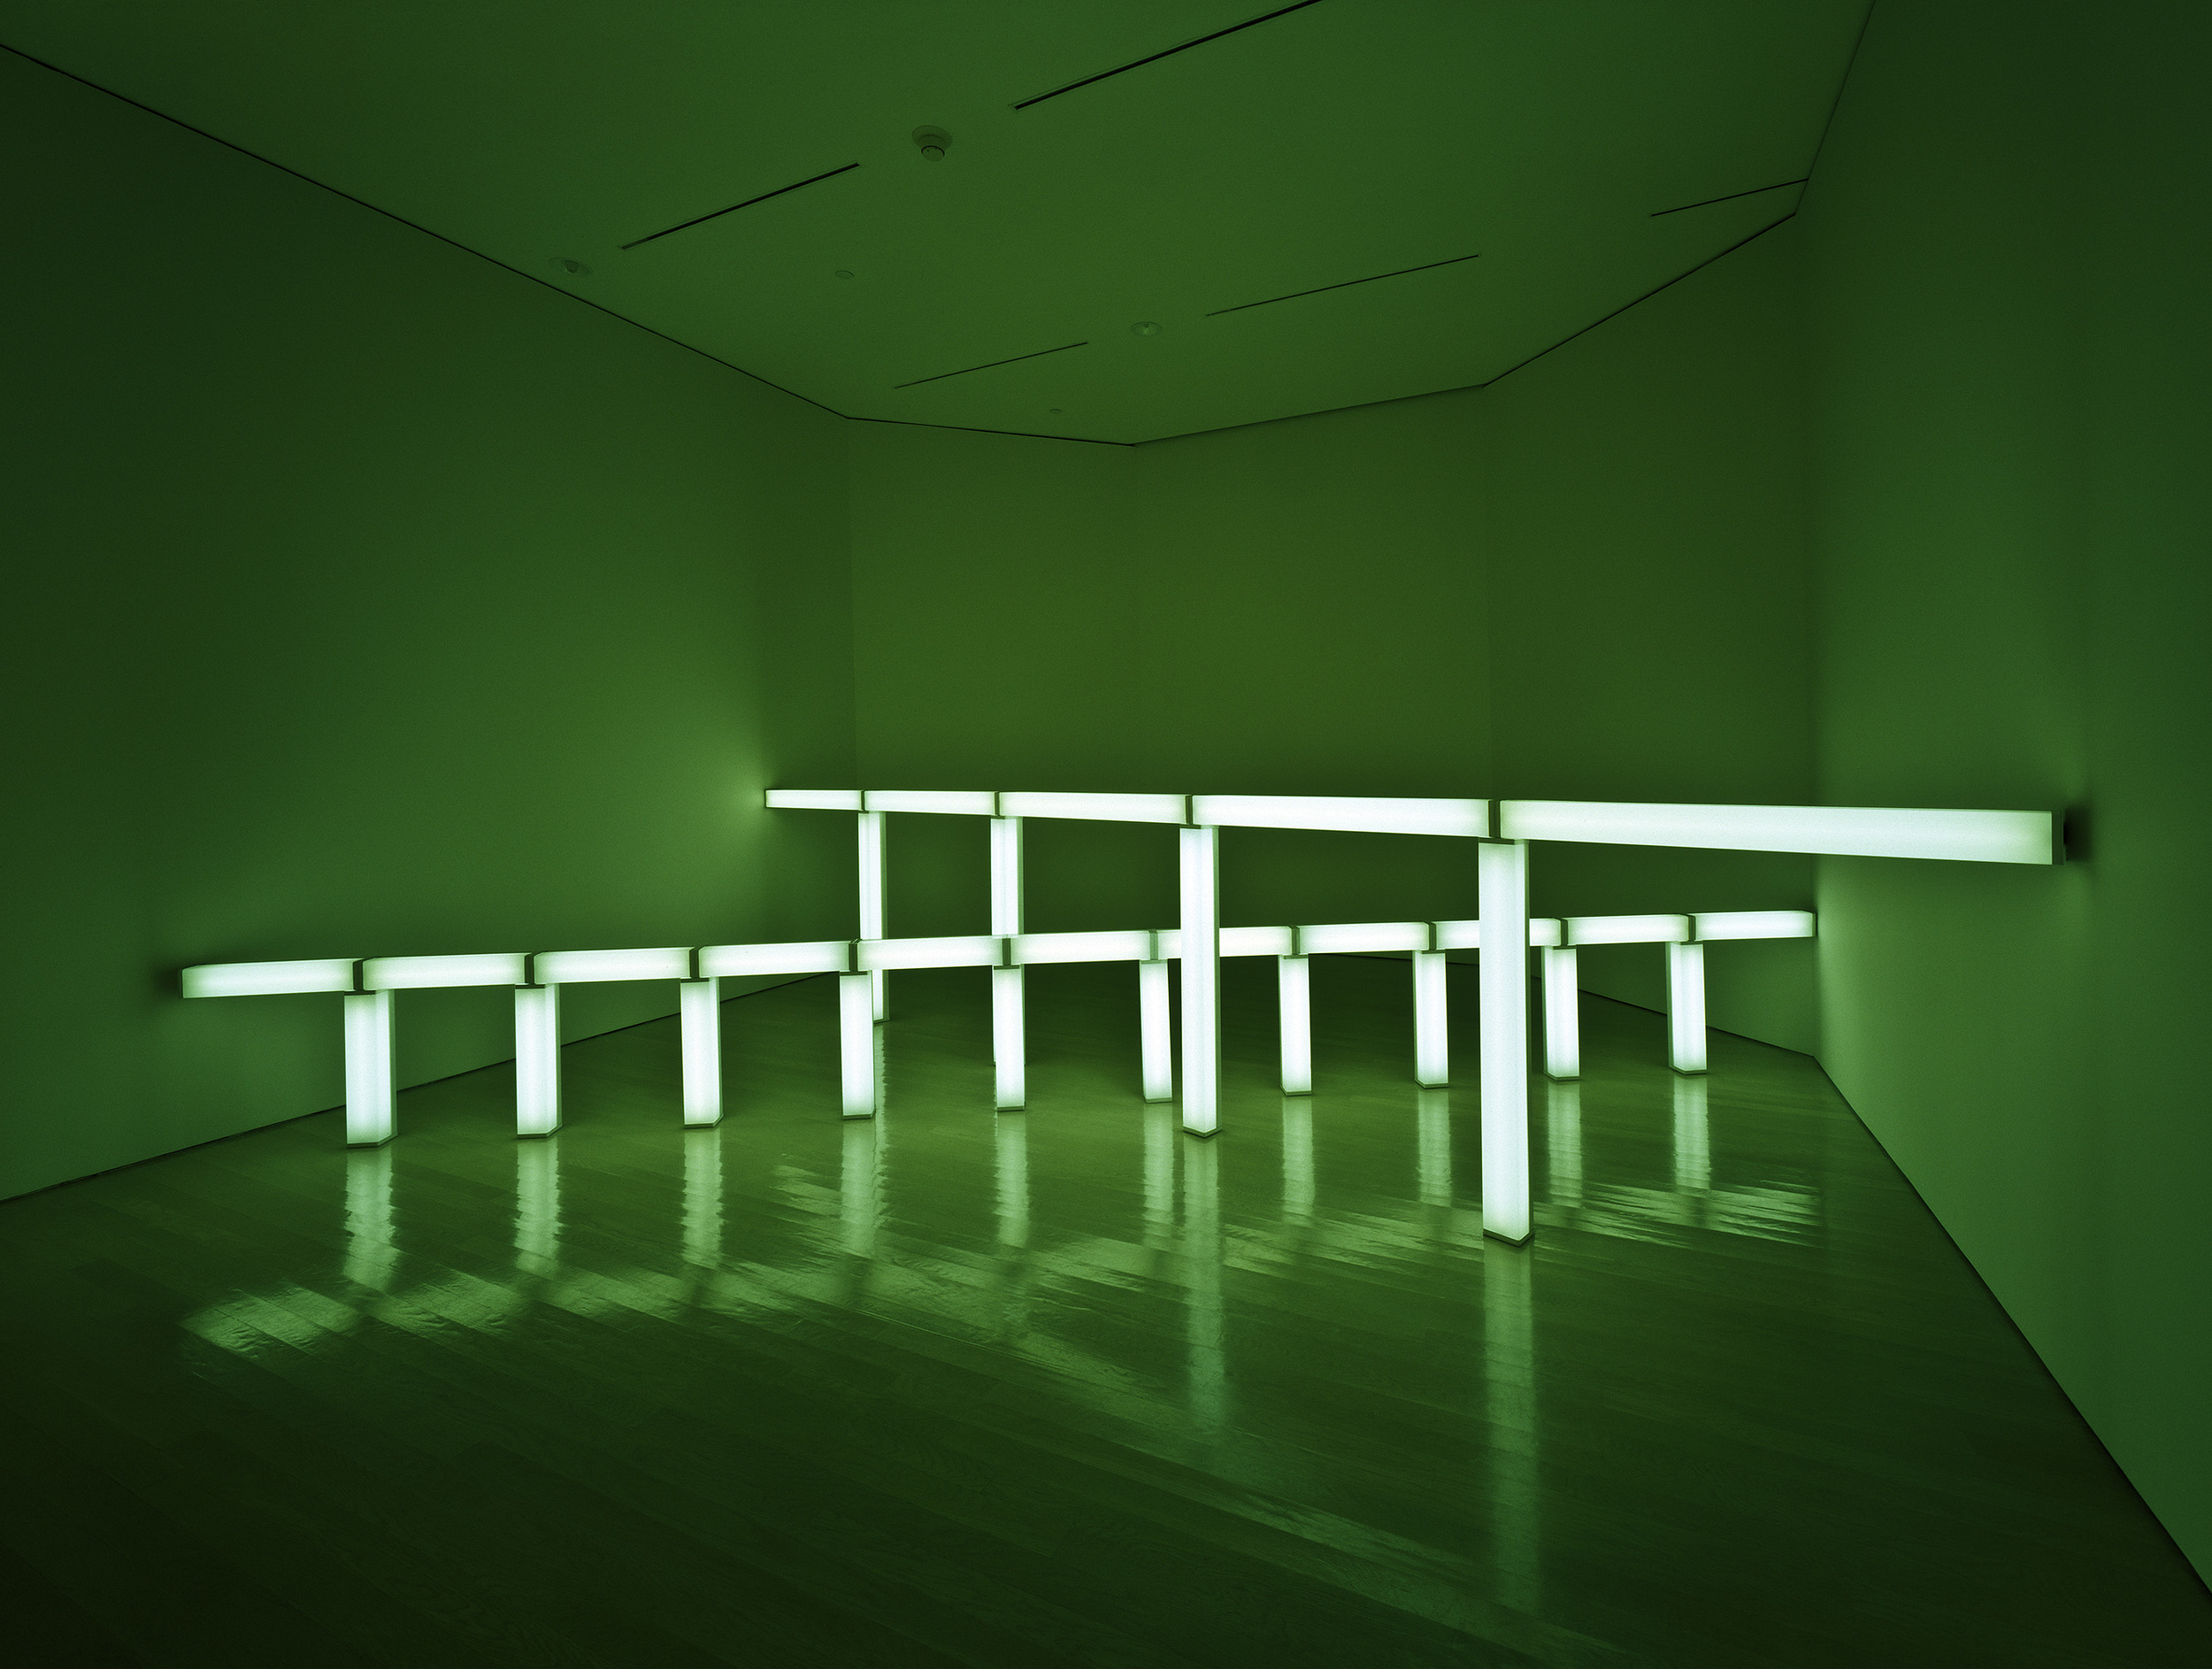 Dan Flavin, greens crossing greens (to Piet Mondrian who lacked green), 1966 Green flourescent light First section: 4 ft (122 cm) high, 20 ft (610 cm) wide Panza Collection, 1991 91.3705 Photo: David Heald SRGF, NY